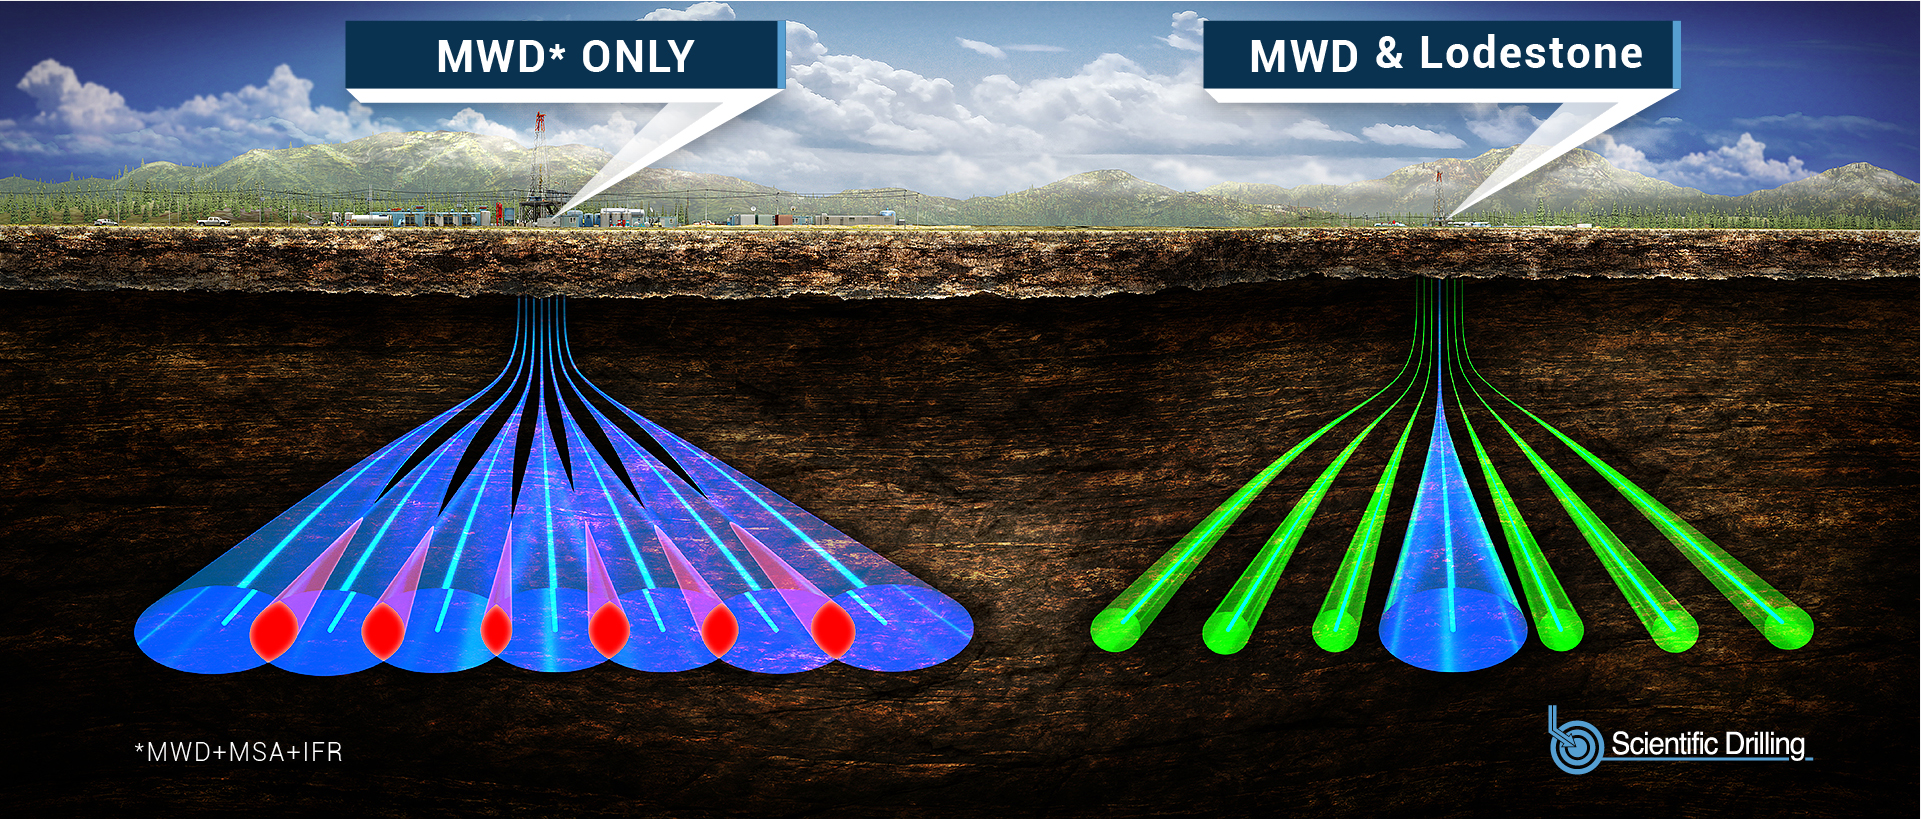 Improved confidence of wellbore proximity is achieved using the Lodestone ranging system.